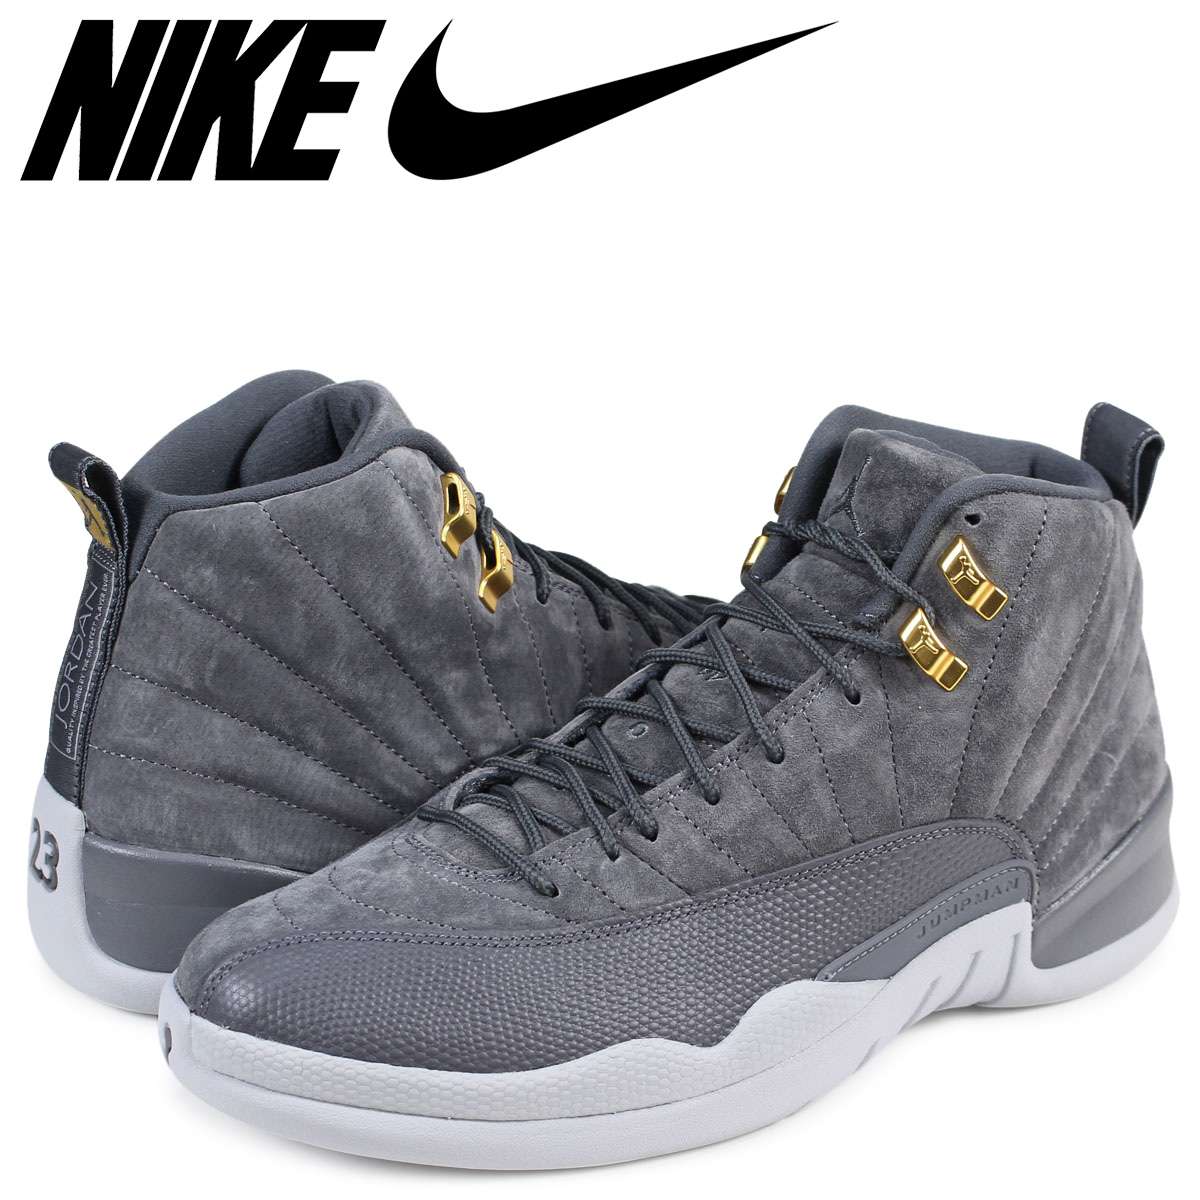 reputable site 7cb57 2aaf0 NIKE Nike Air Jordan 12 nostalgic sneakers AIR JORDAN 12 RETRO 130,690-005  men's gray